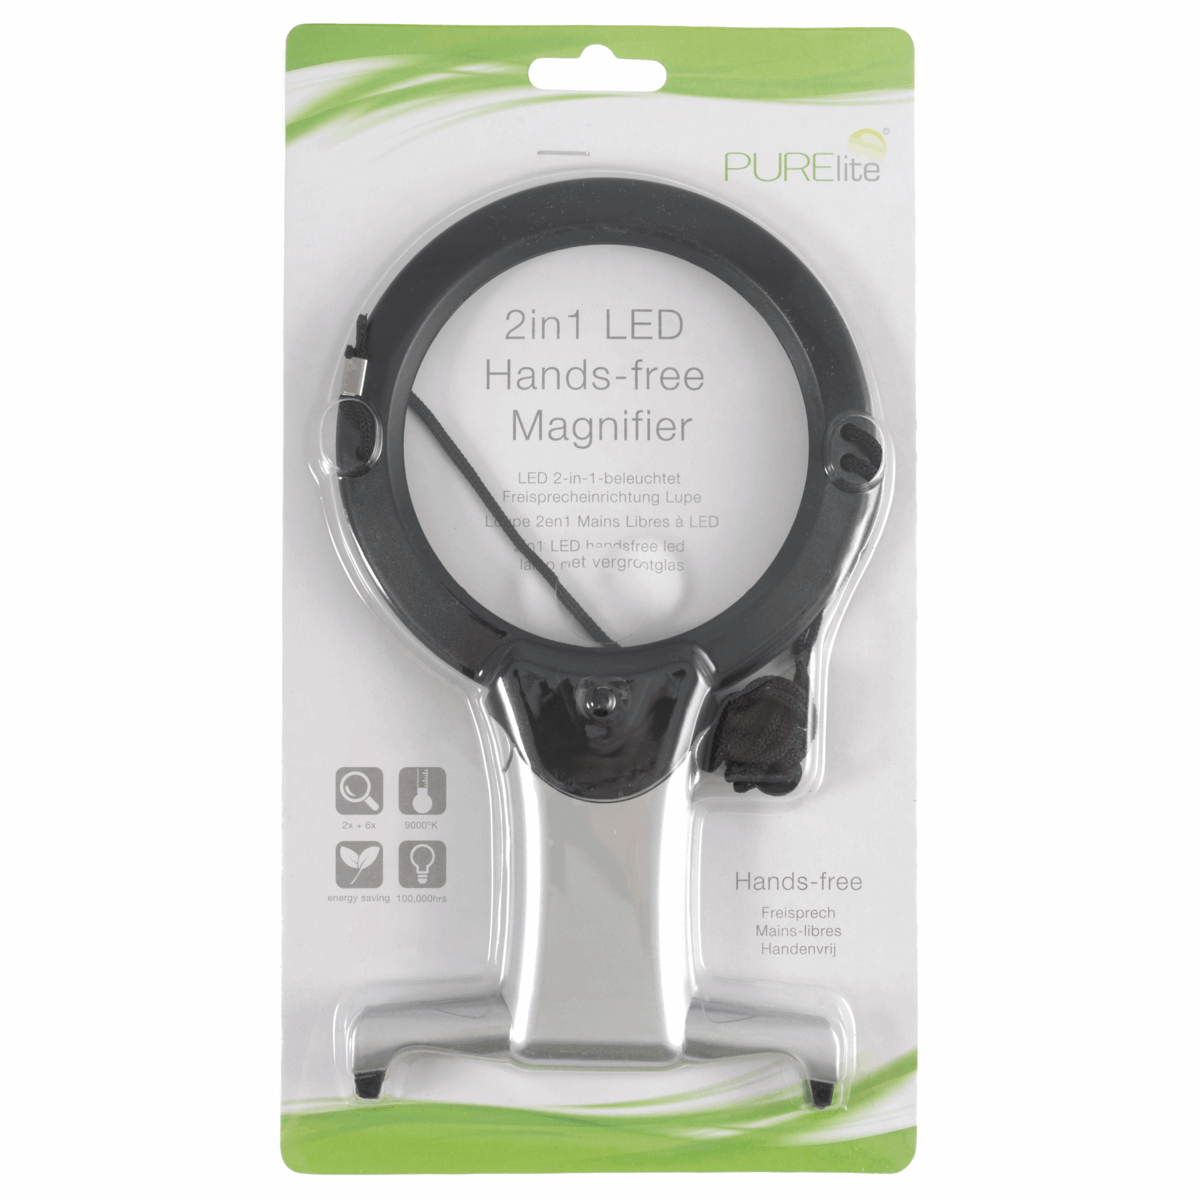 Magnifier Illuminated Hands-Free 2-in-1